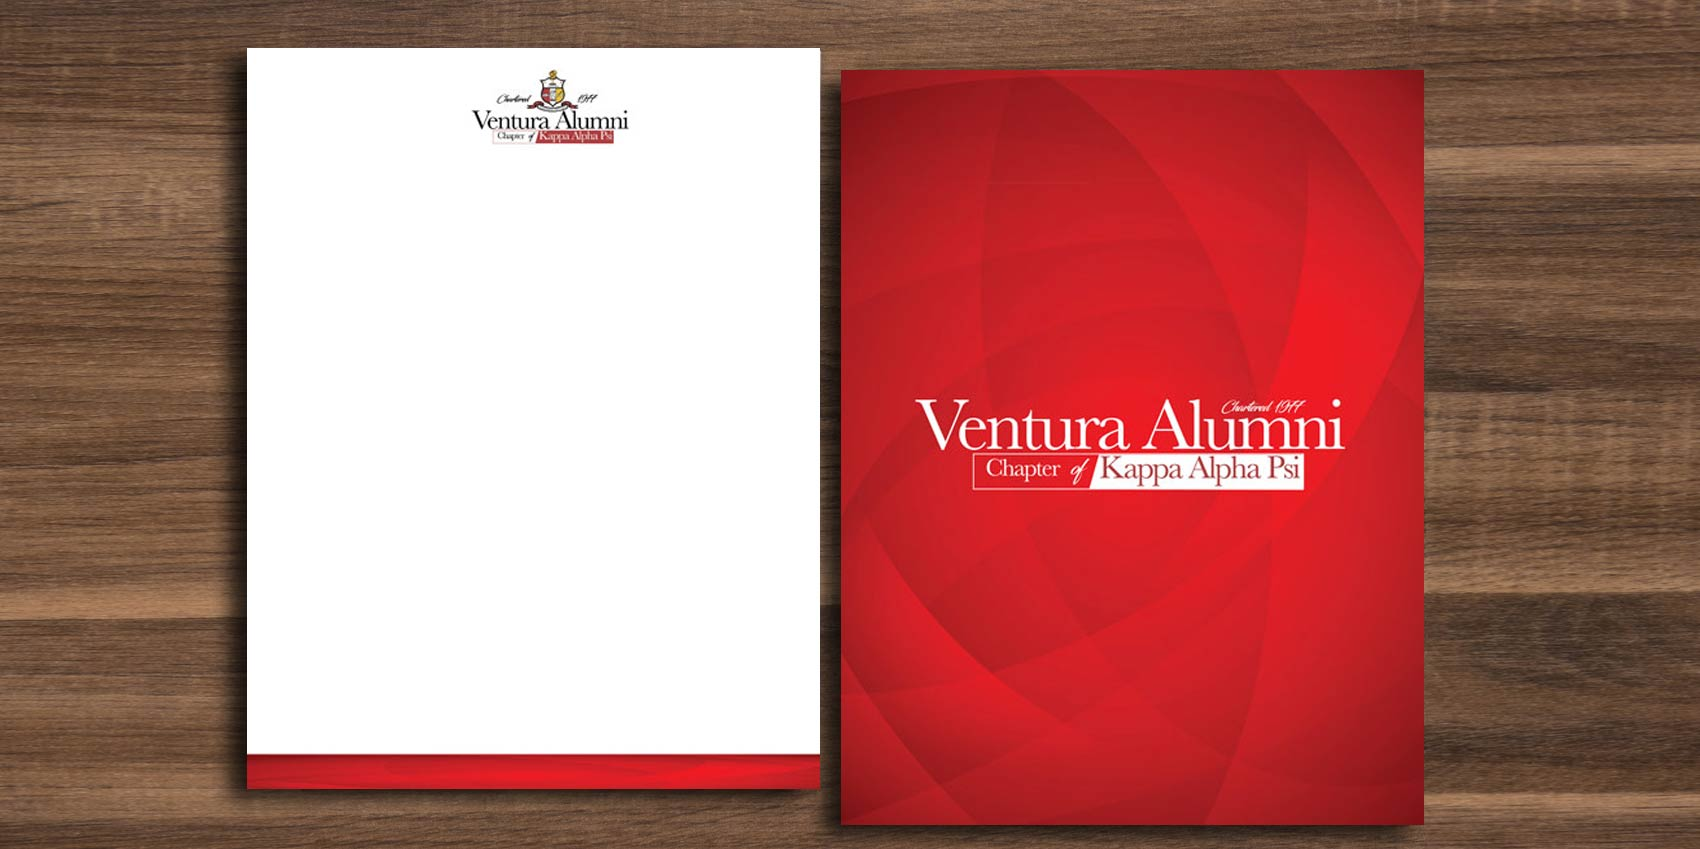 Letterhead Design for the ventura alumni chapter of kappa alpha psi stationary